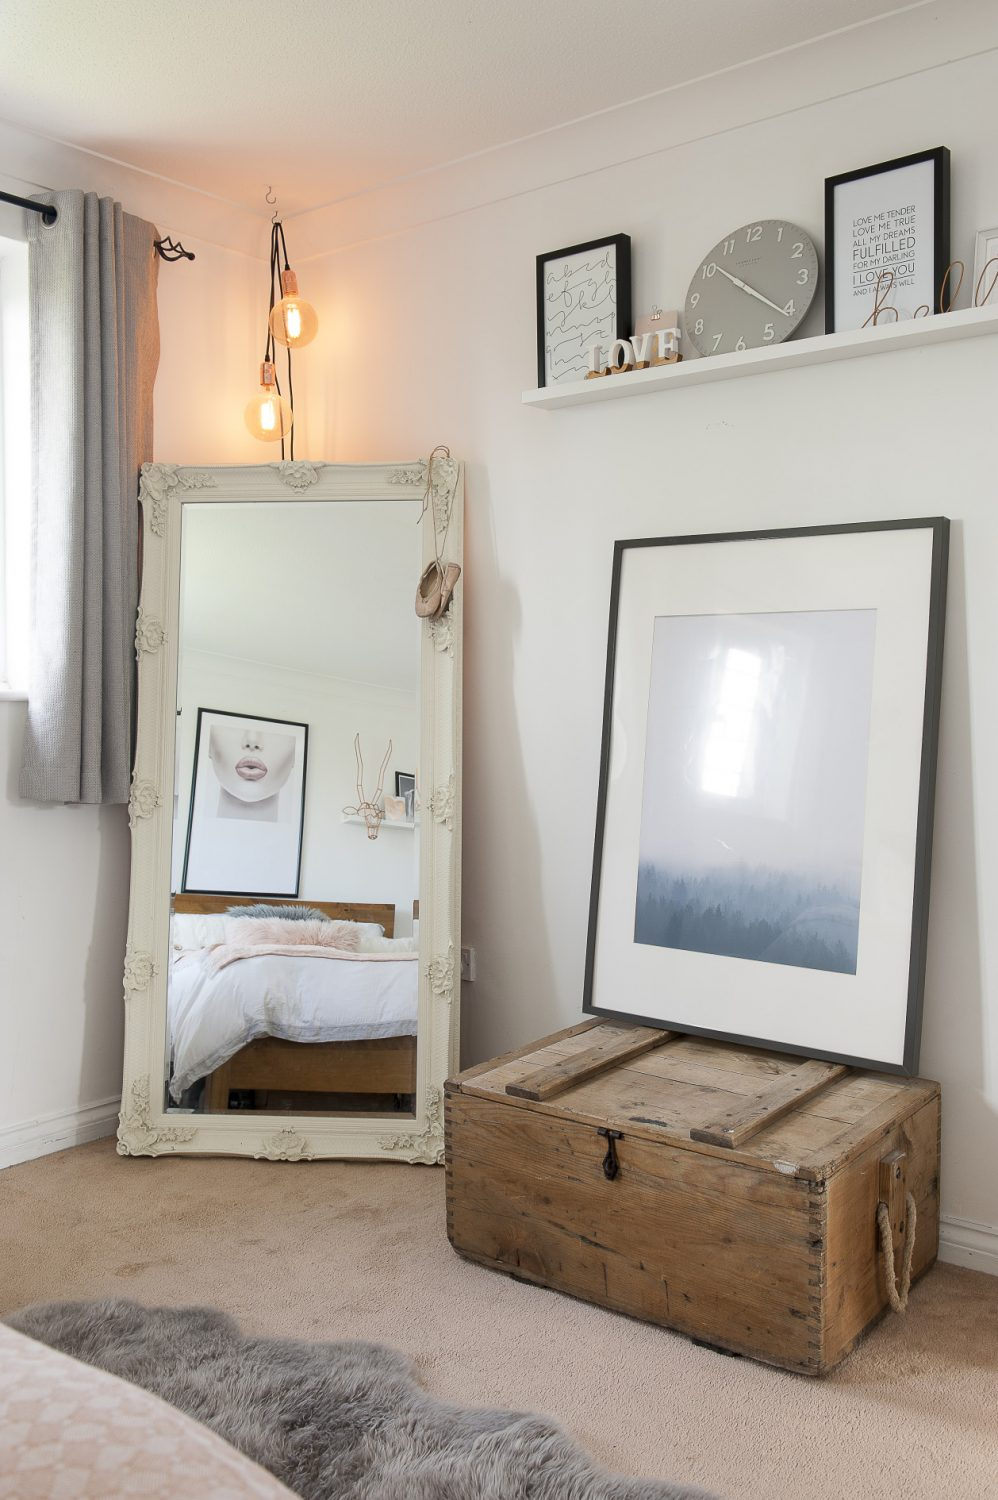 The large mirror in James and Lucinda's bedroom is from Hoopers in Tunbridge Wells, given to the couple as a house warming gift